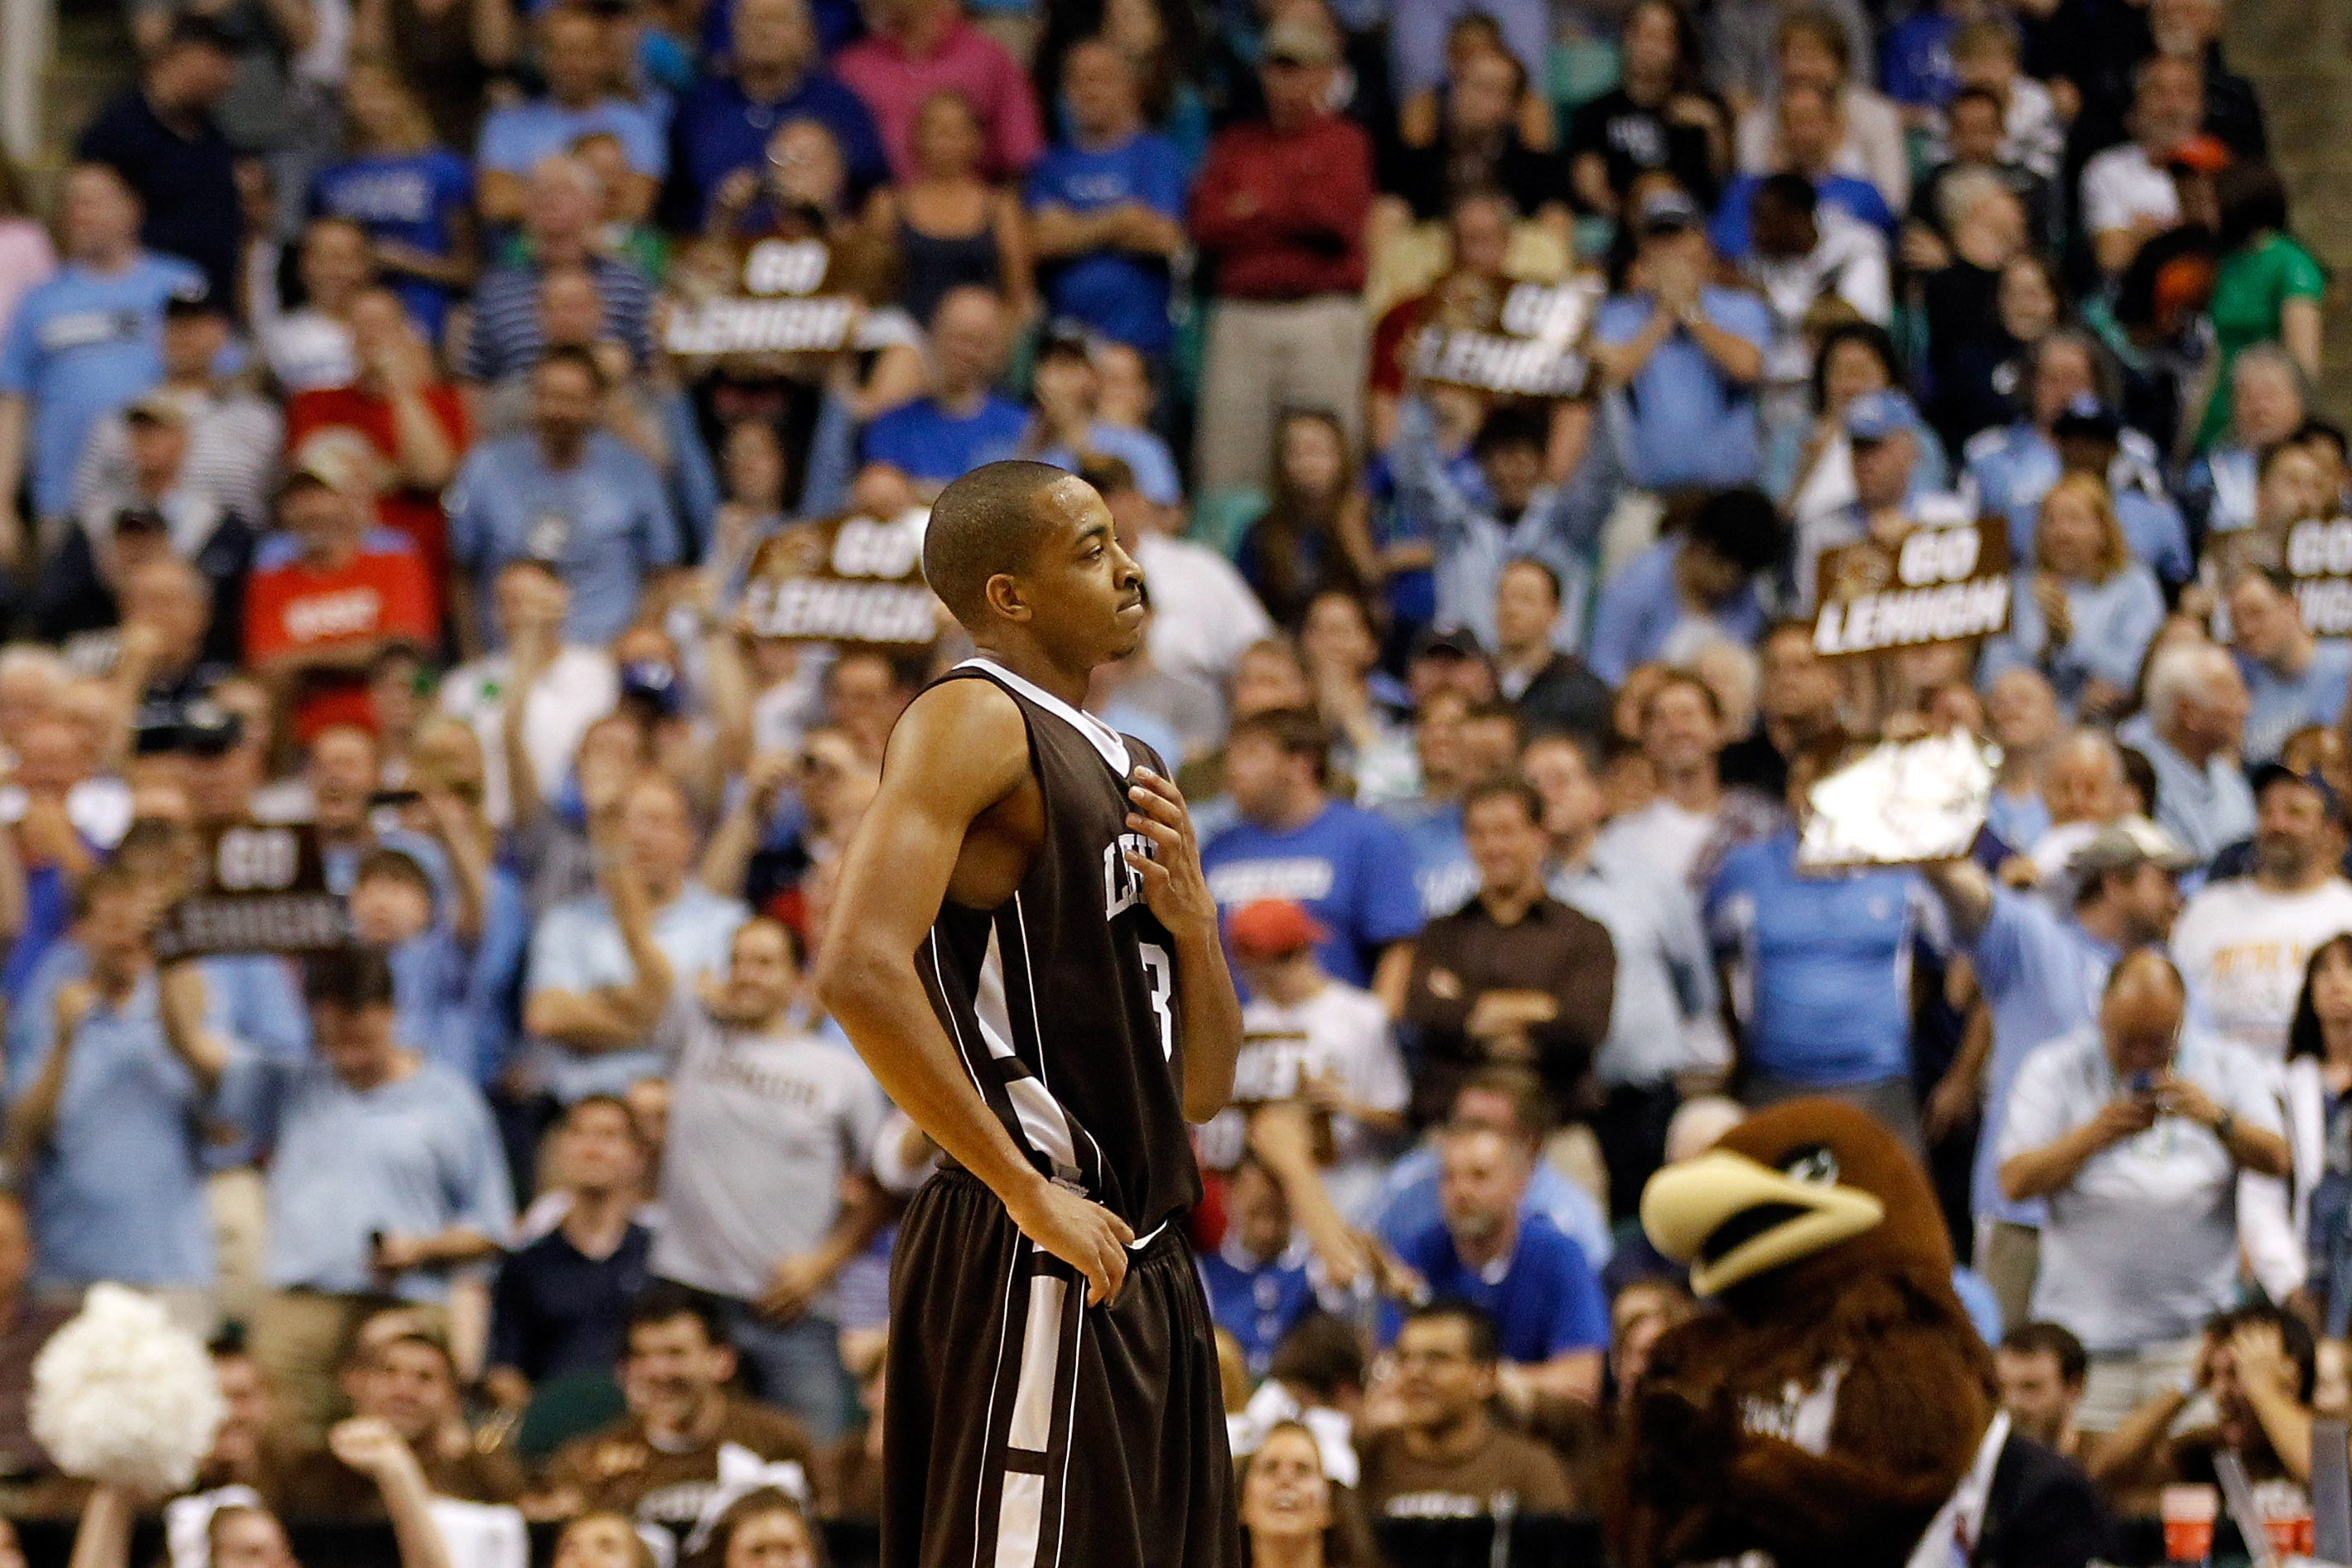 d6c82bb86a4 March Madness  C.J. McCollum reflects on Lehigh upsetting Duke in the 2012  NCAA Tournament